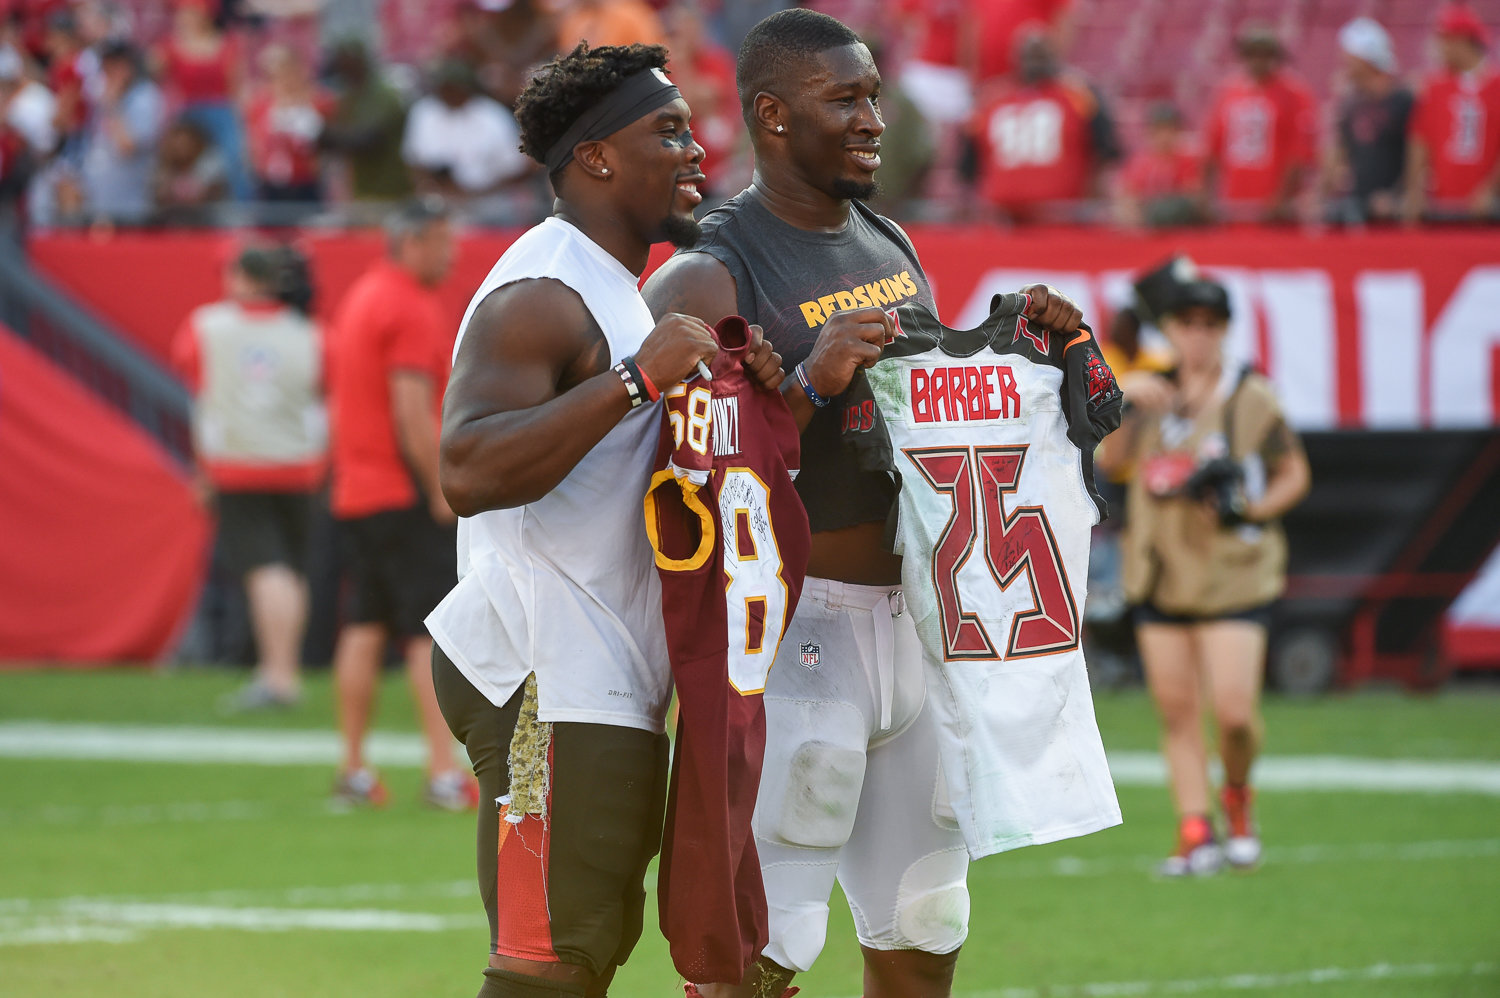 2018 Week 10: Redskins at Buccaneers